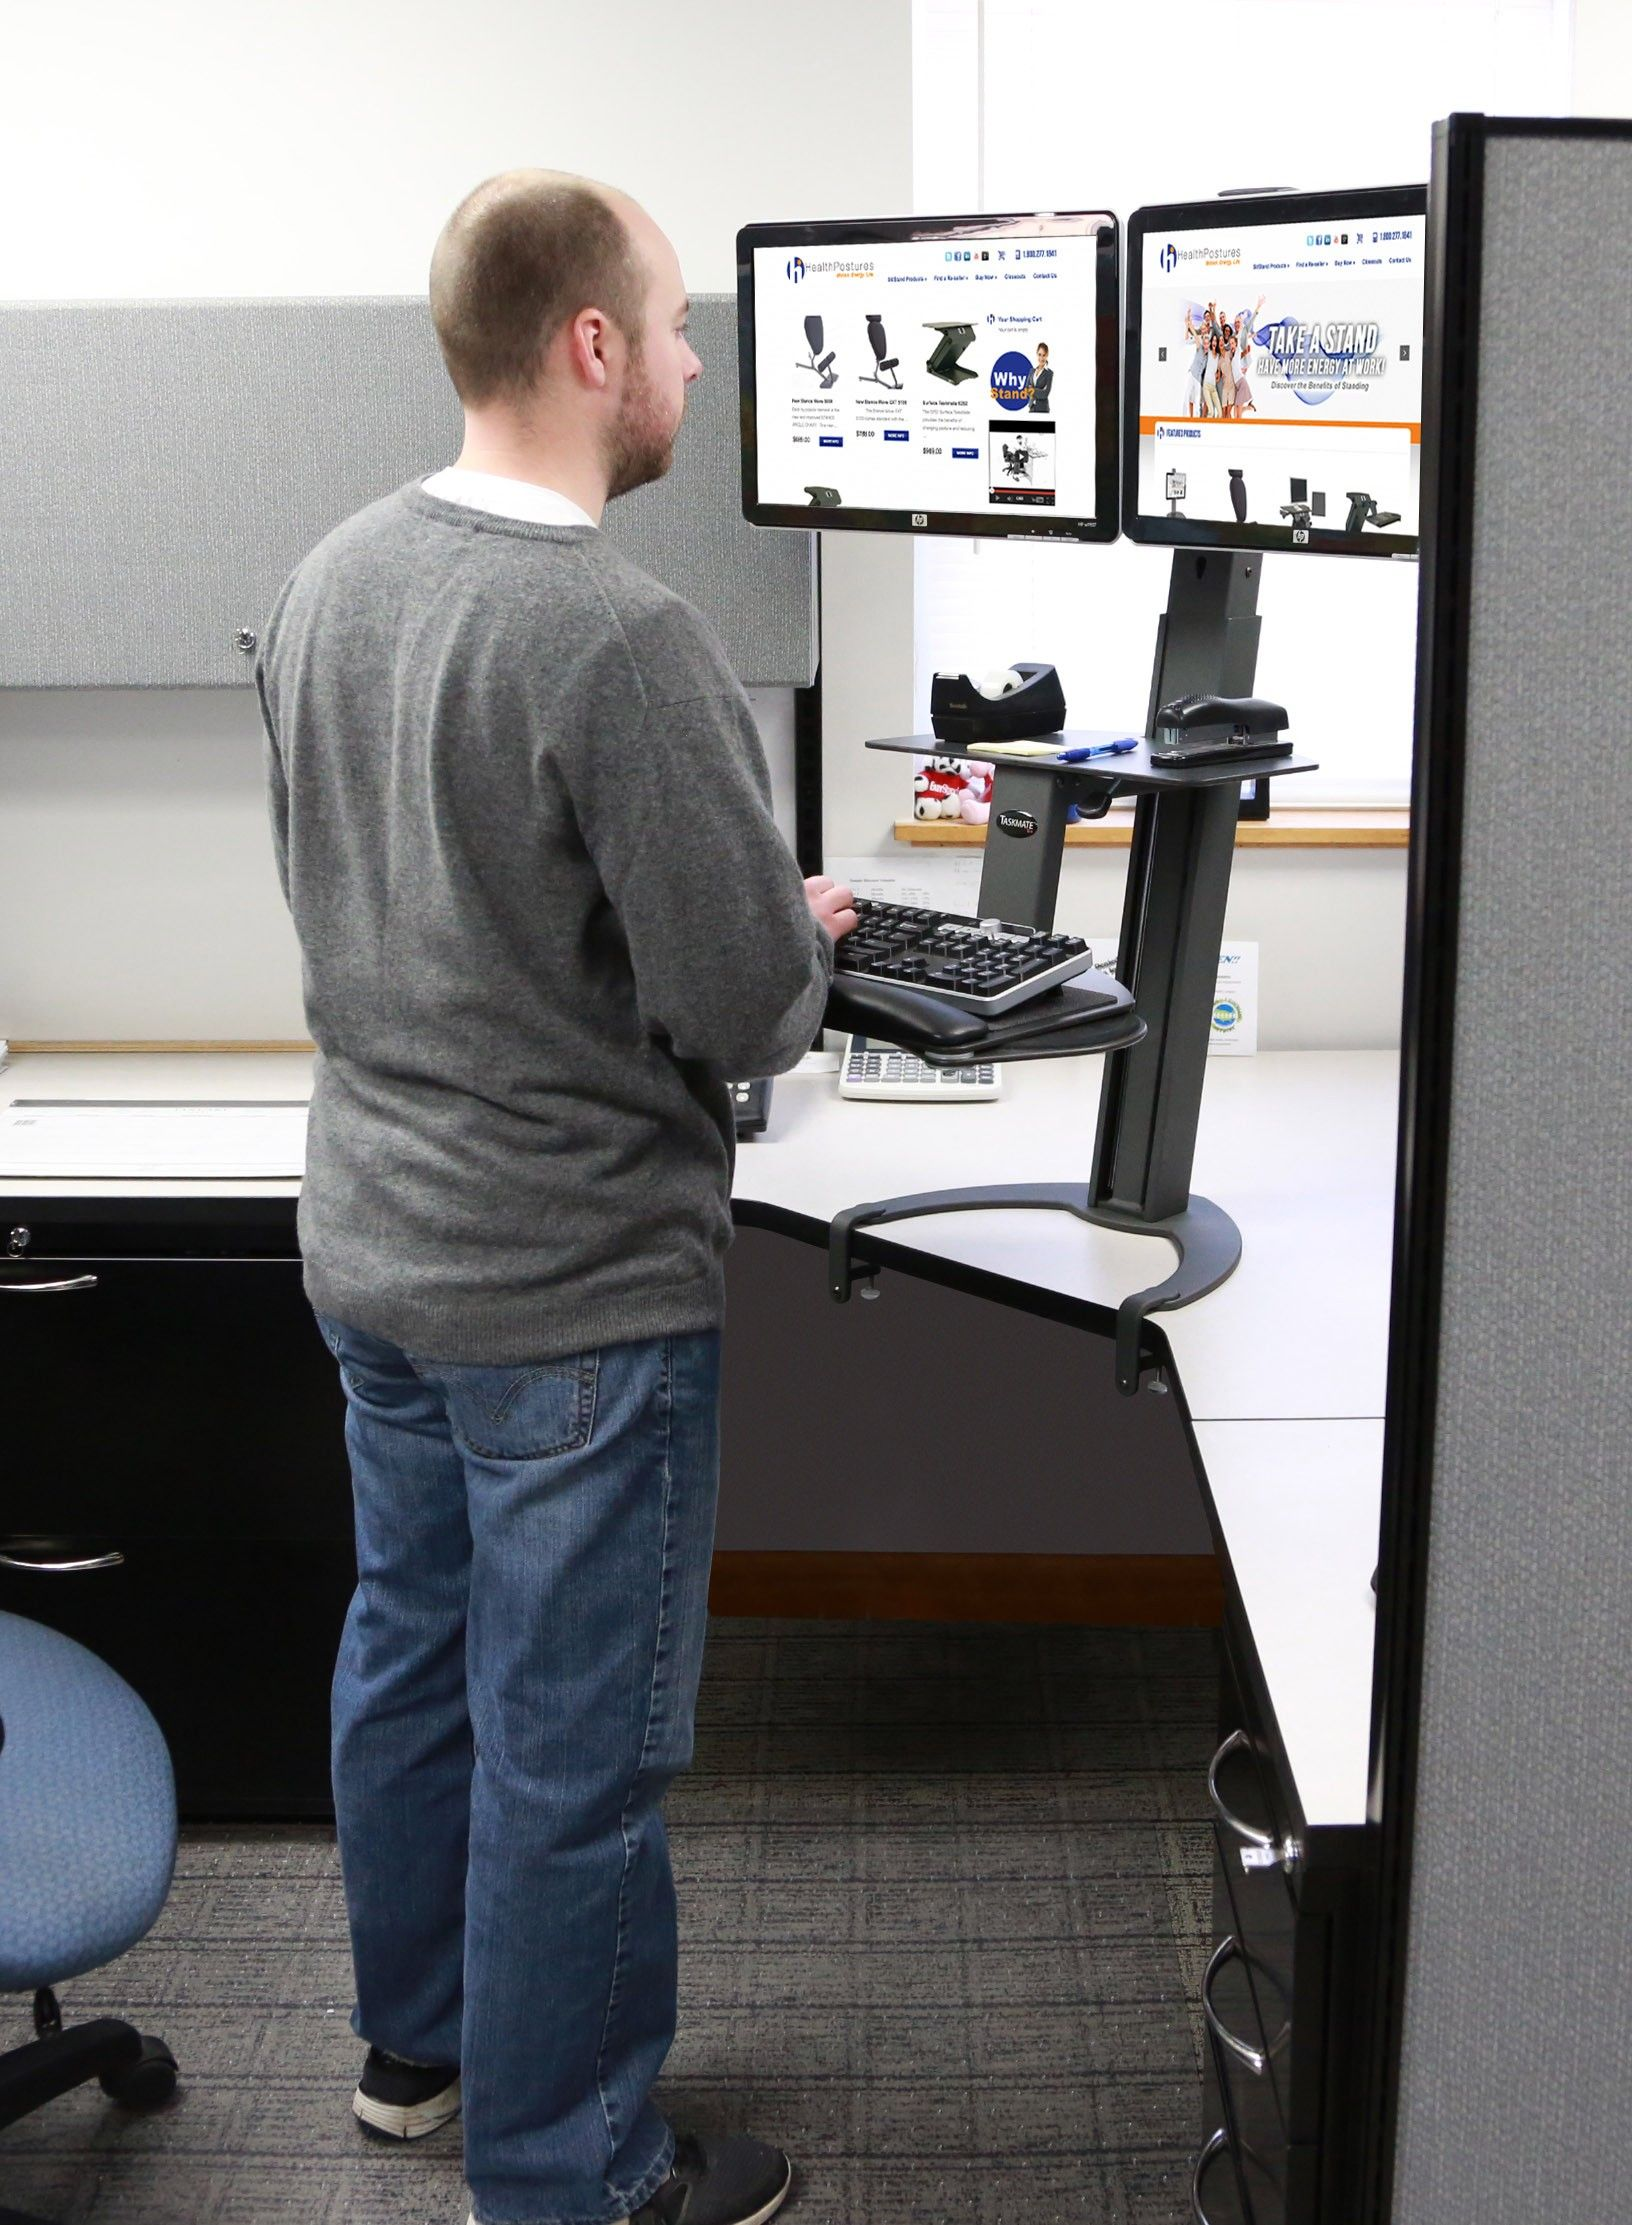 Taskmate Go Sit To Stand Desk W Dual Monitor Arm Desk Standing Desk Business Furniture